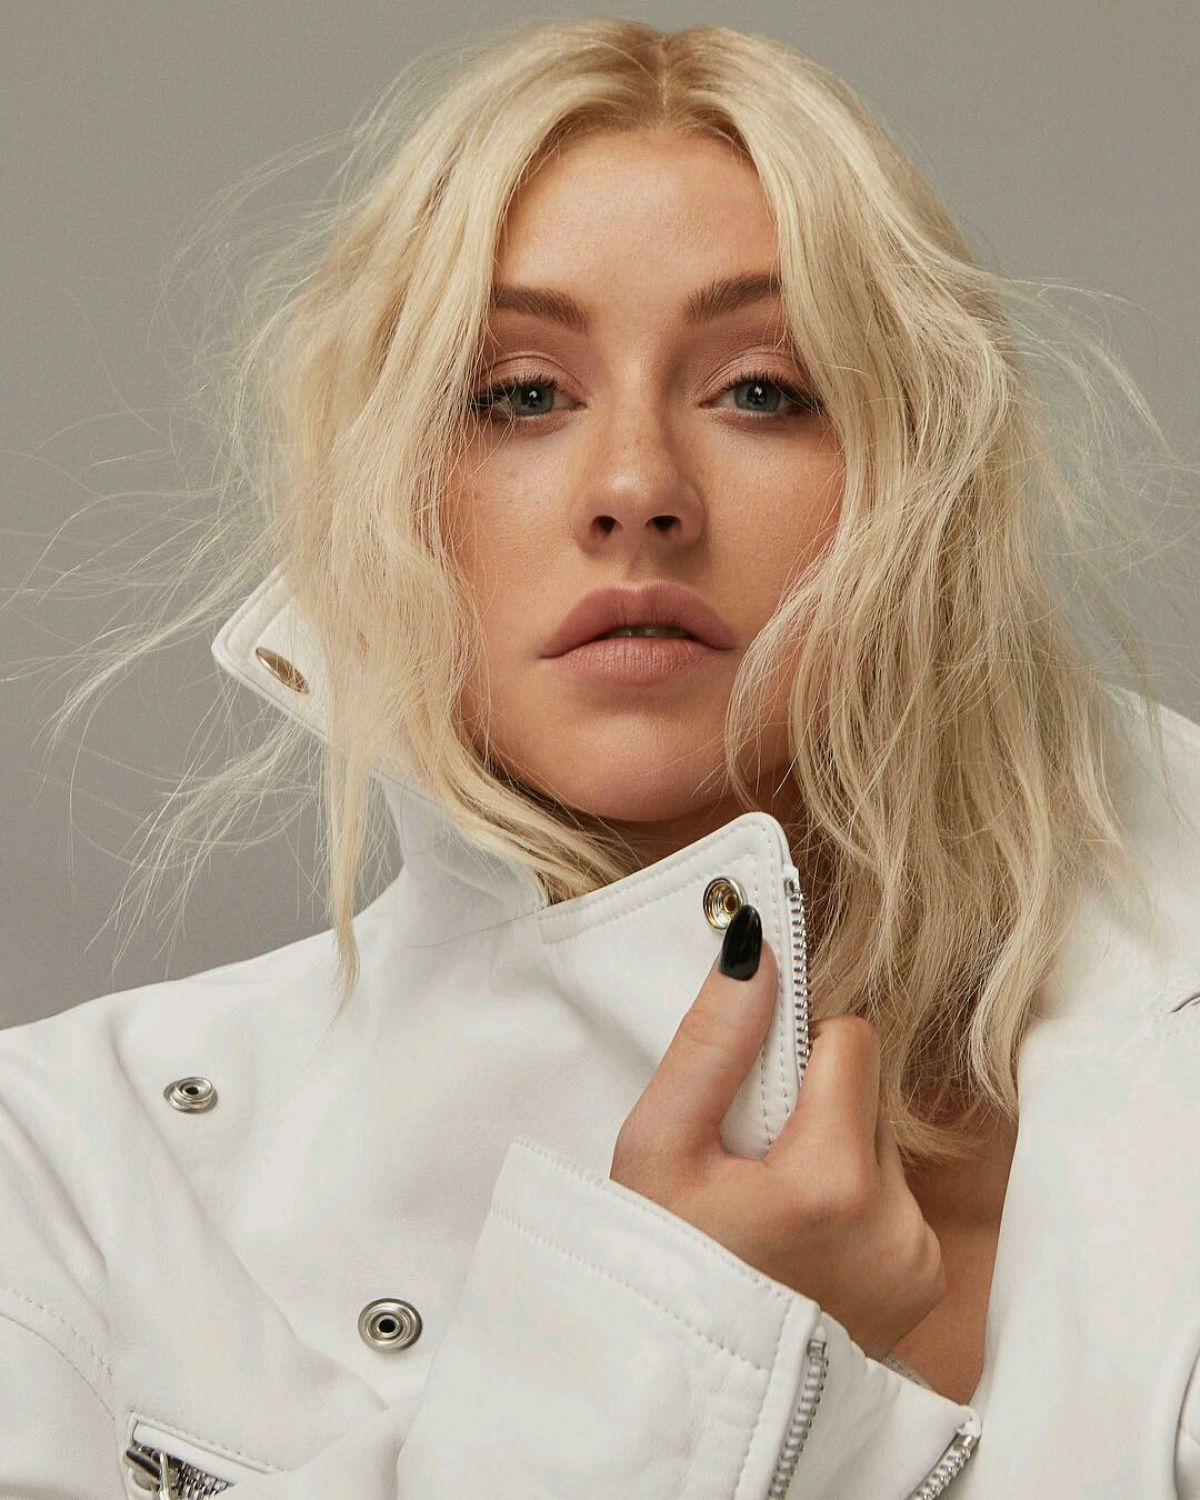 christina-aguilera-for-cosmopolitan-magazine-october-2018-7.jpg